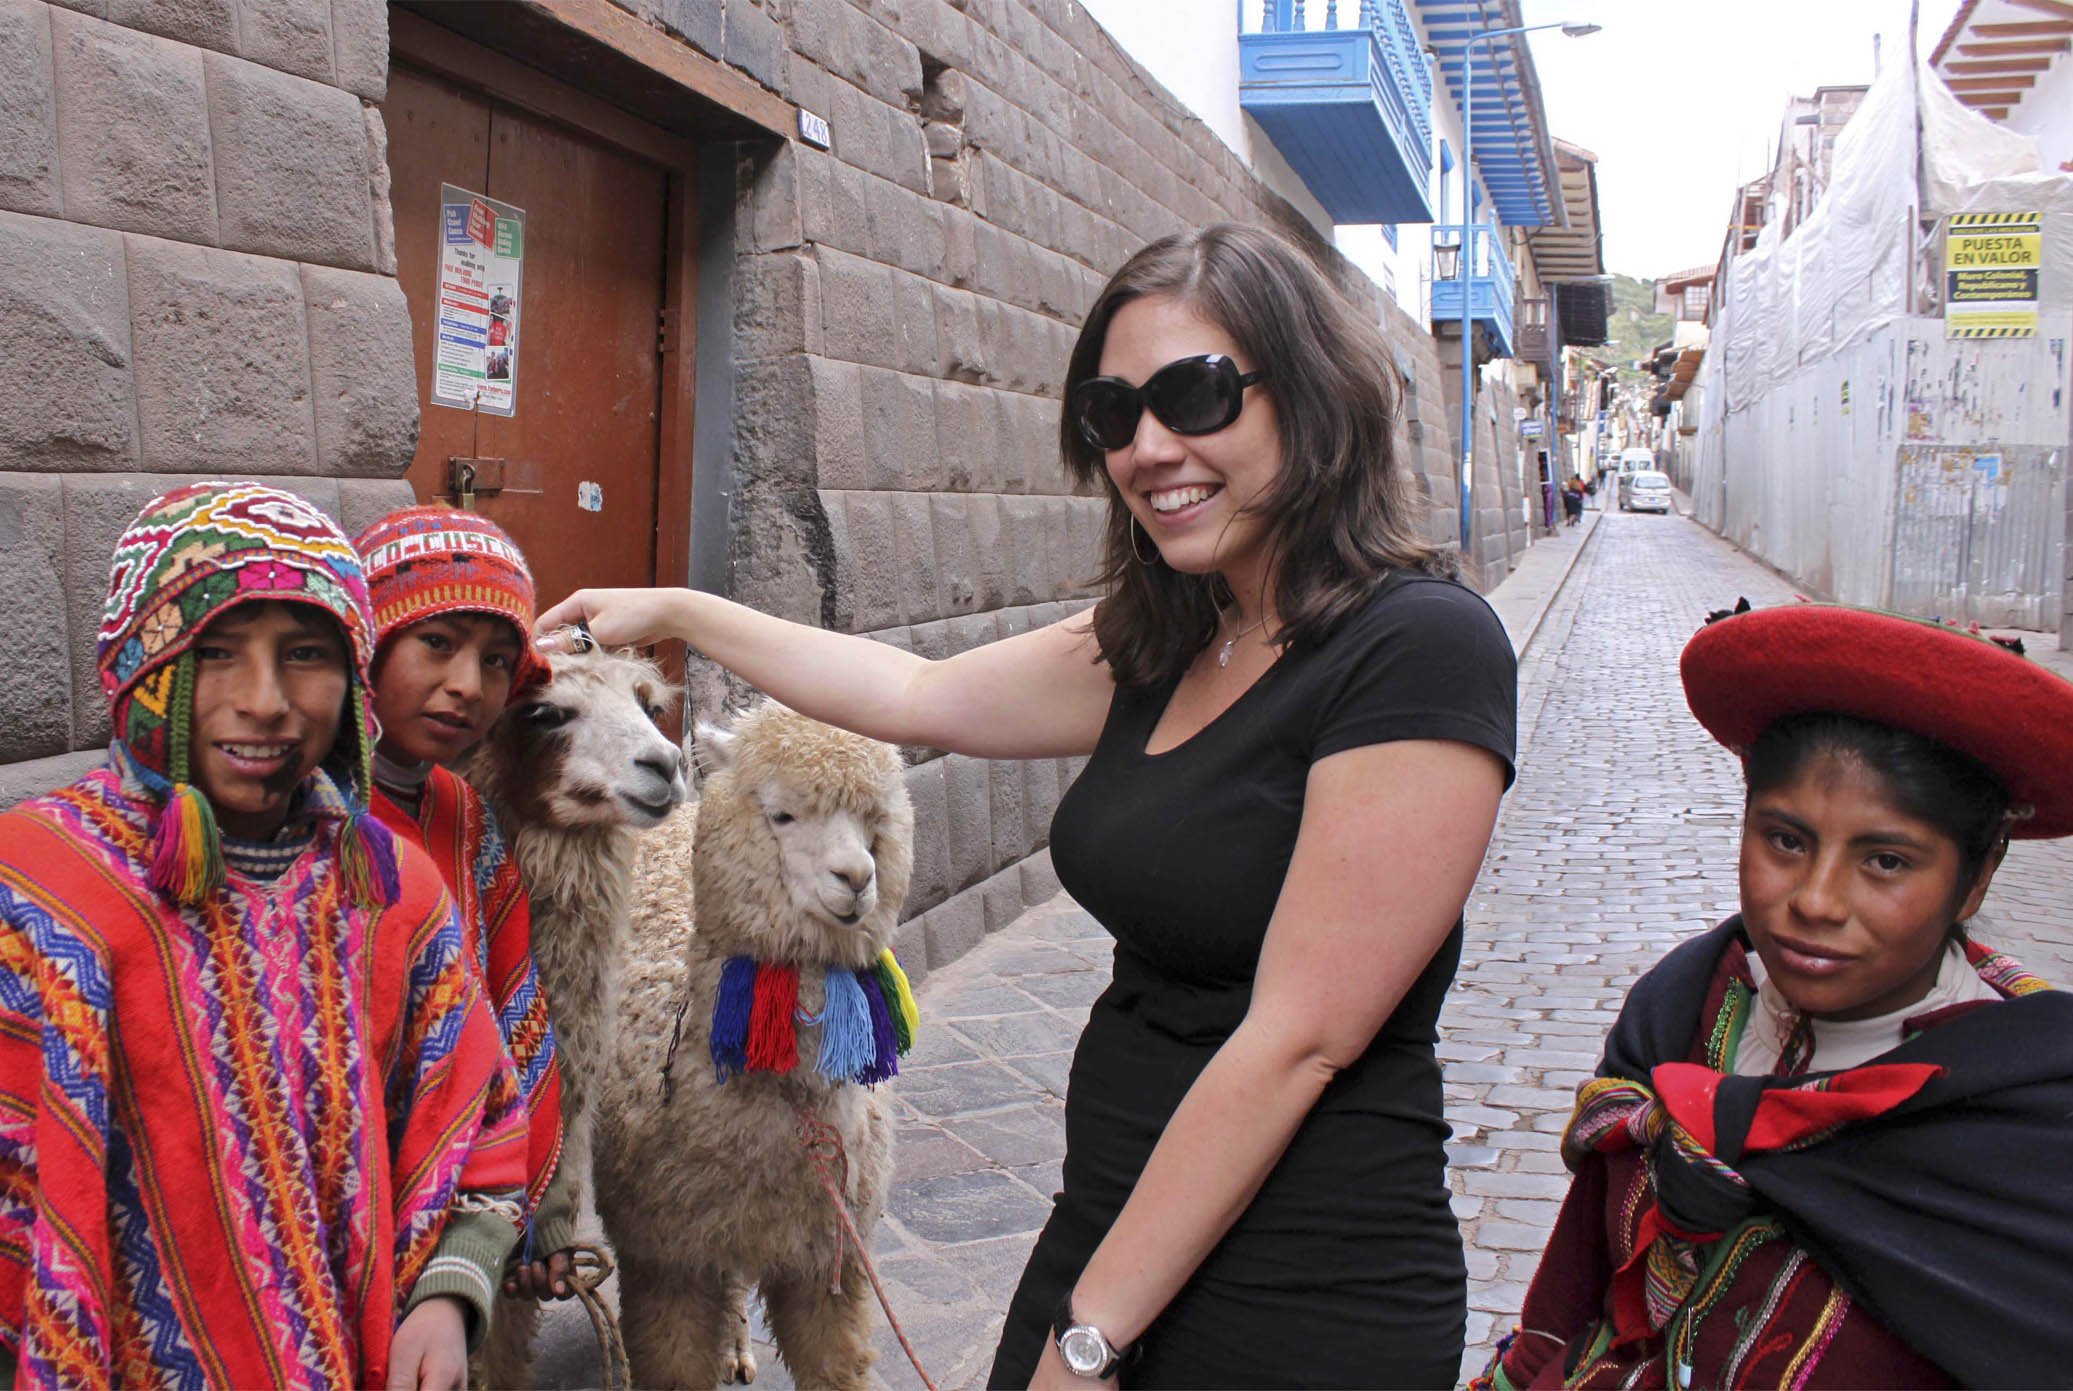 A day in Cusco